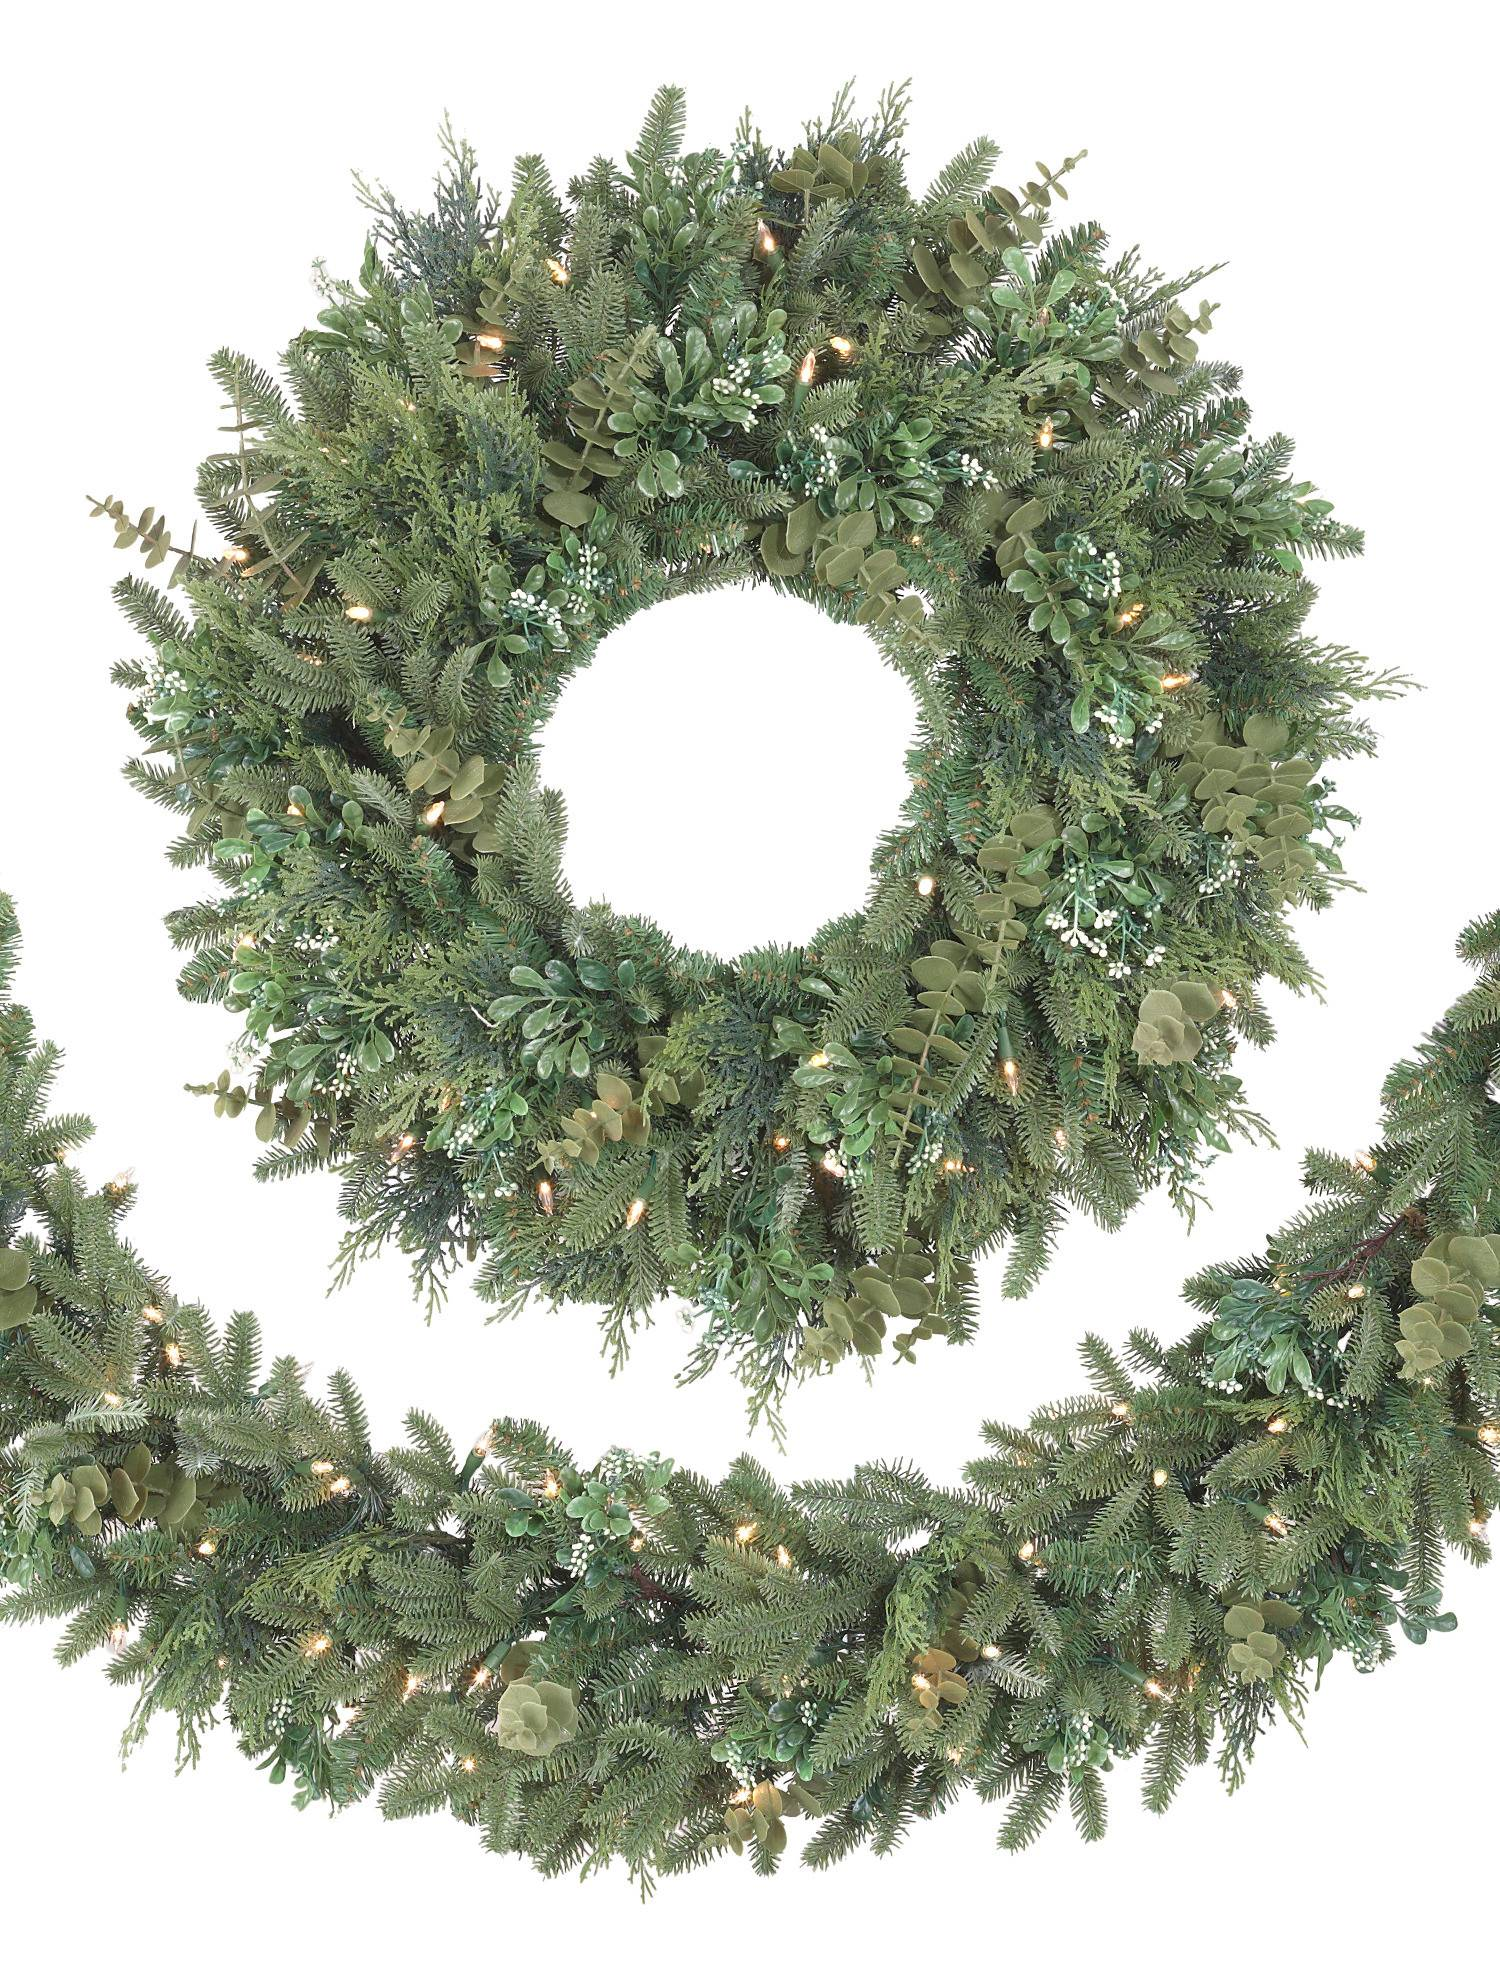 Fraser Fir Decorated Wreath From Balsam Hill Decorating Ideas To Hide A Fuse Box Bh Meadow Main